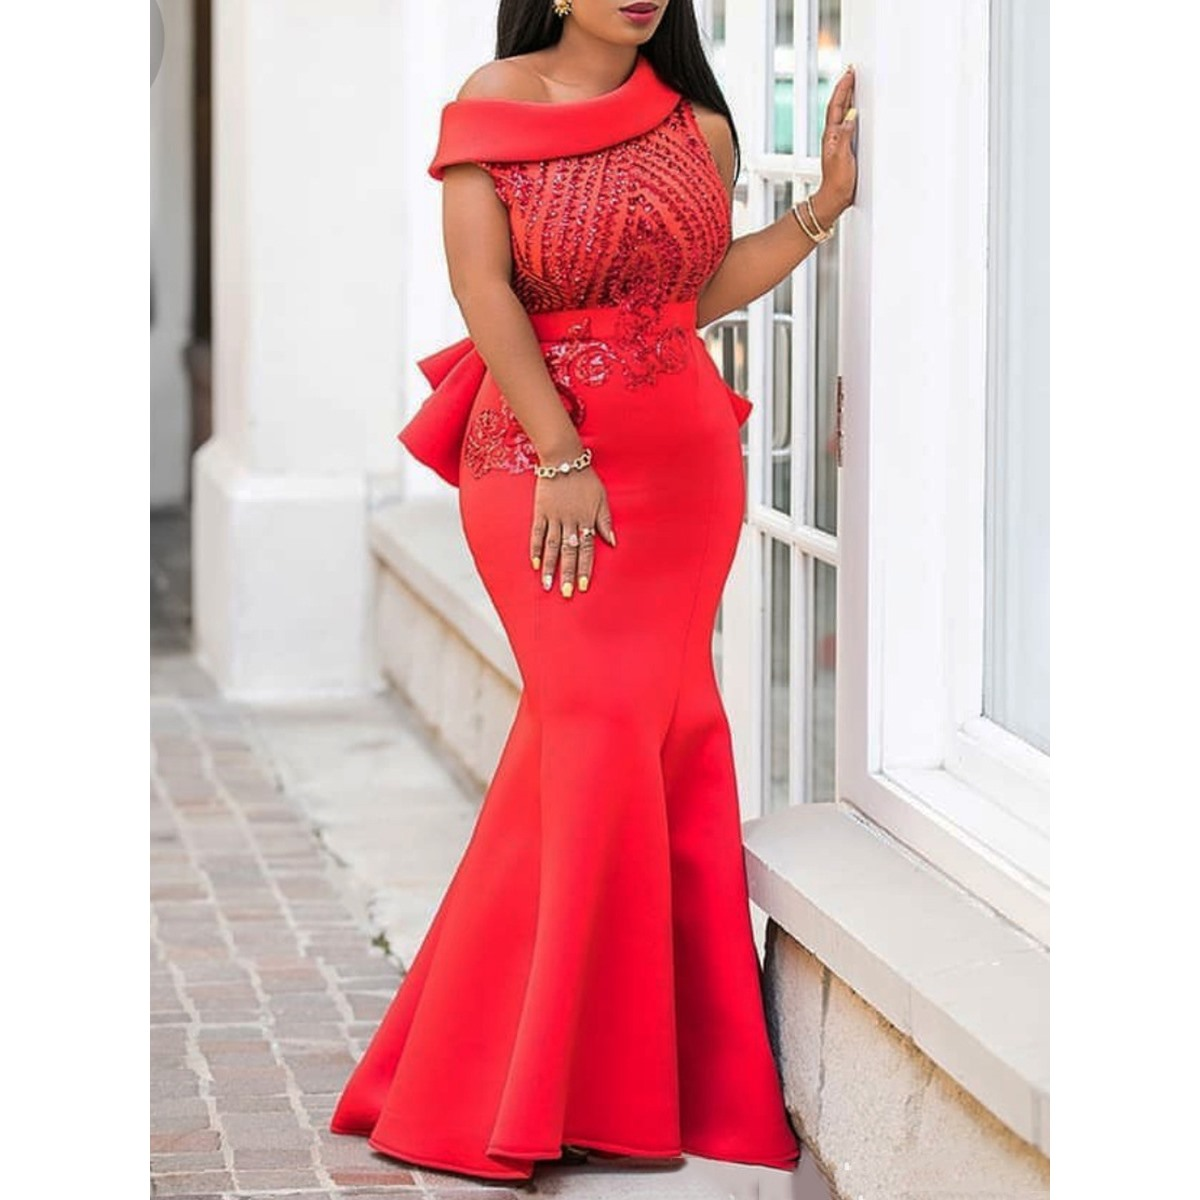 Sequins Bodycon Trumpet Party Dress Women Elegant Slim Ruffle Christmas Ladies Prom Evening Formal Dinner Red Sexy Maxi Dresses